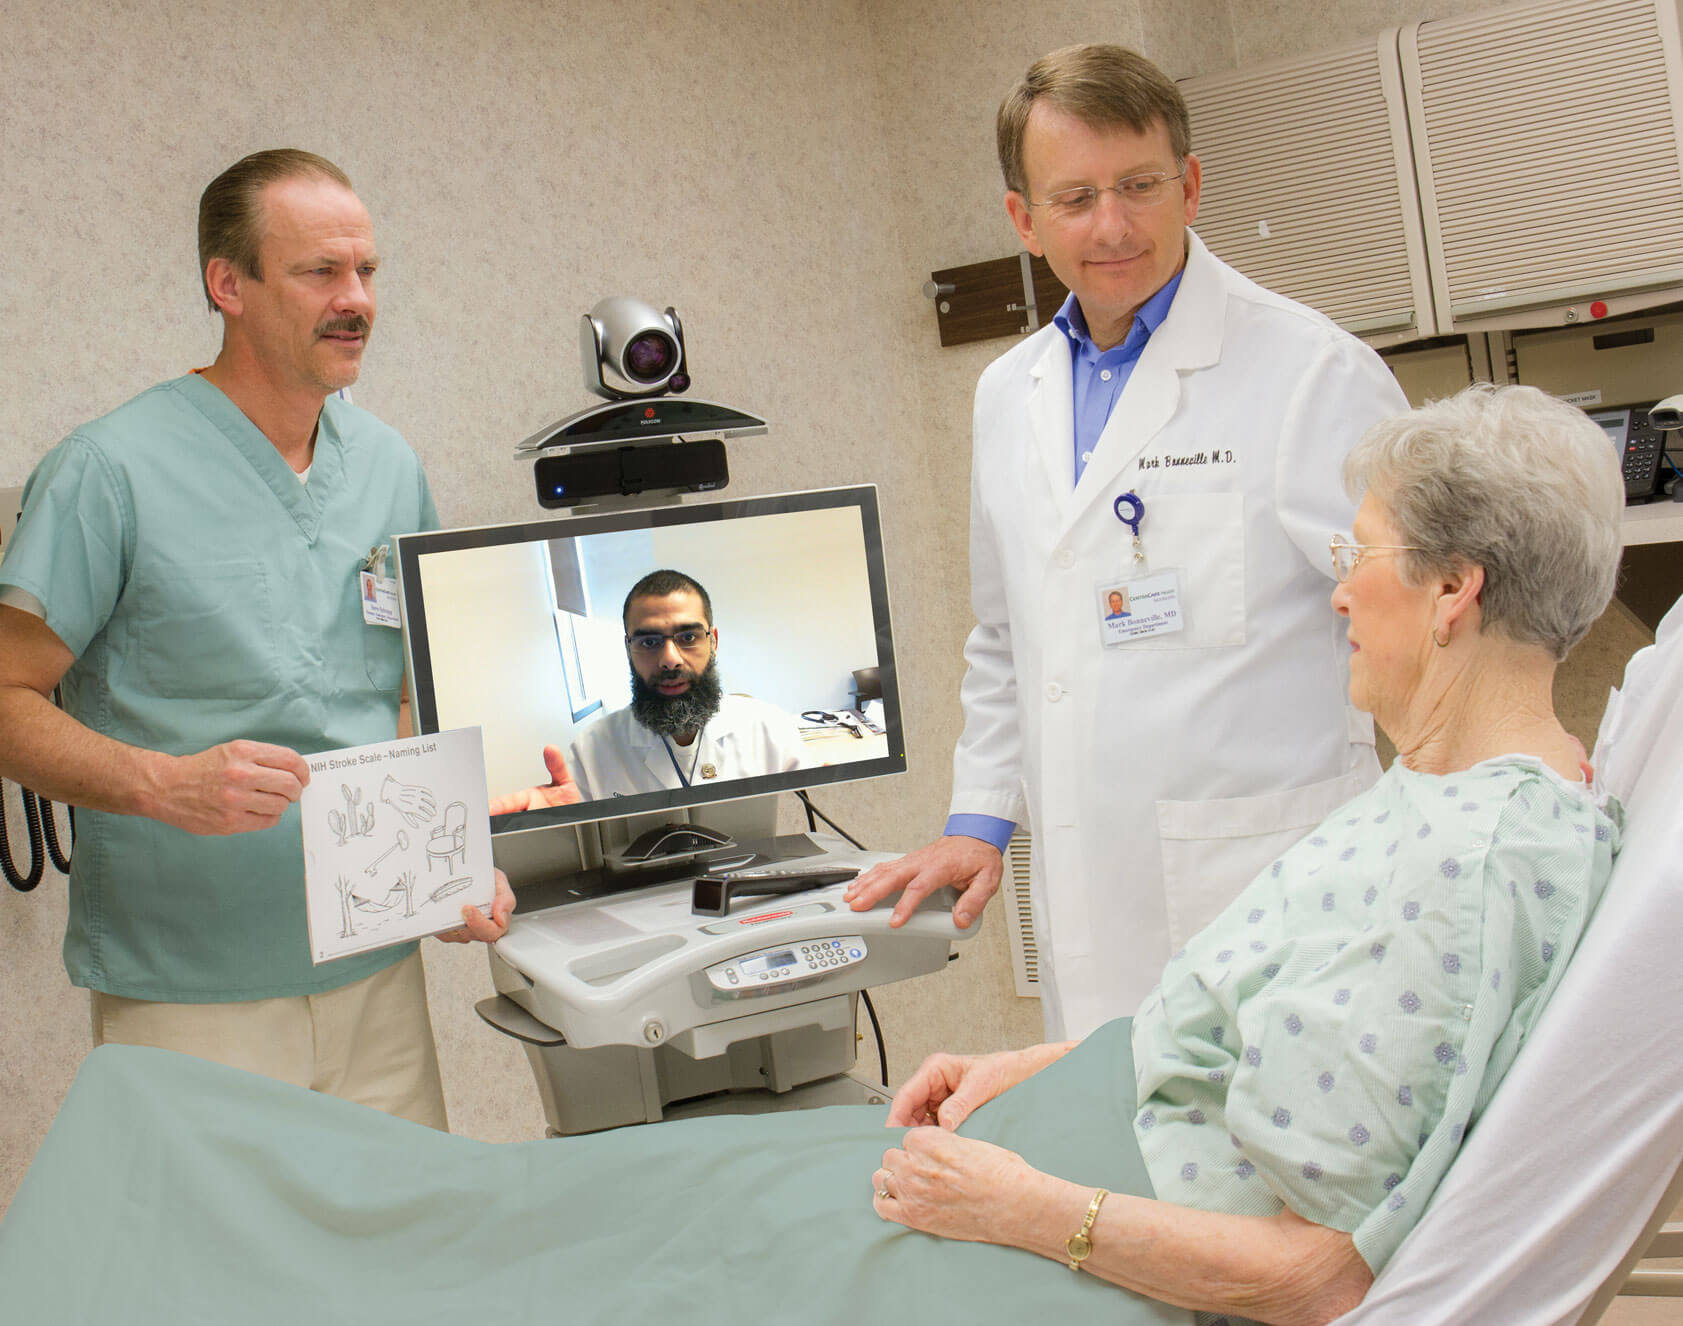 Patient speaking to physician on monitor